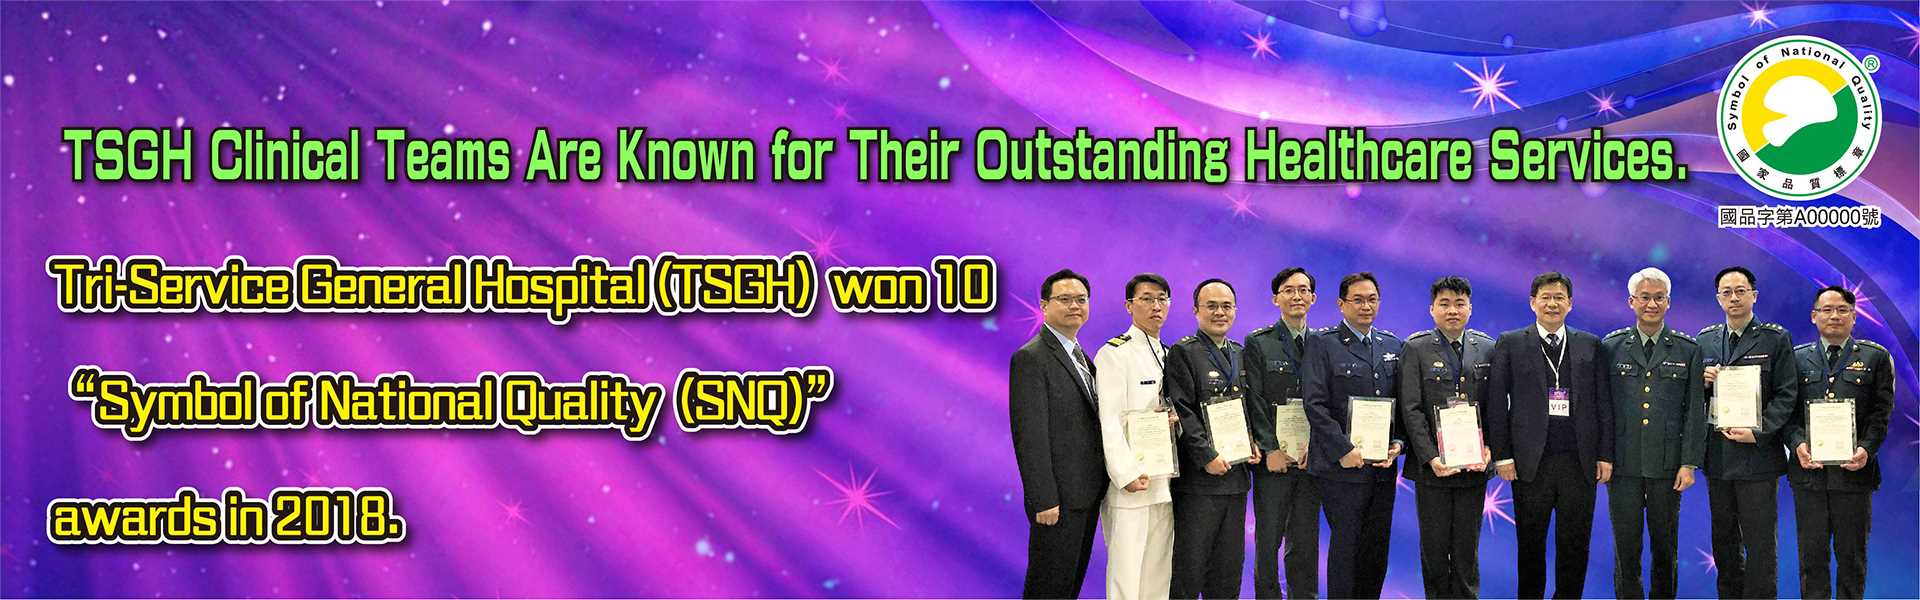 "Tri-Service General Hospital (TSGH) Clinical Teams Won ""Symbol of National Quality (SNQ)"" Awards Bestowed by Research Center for Biotechnology"